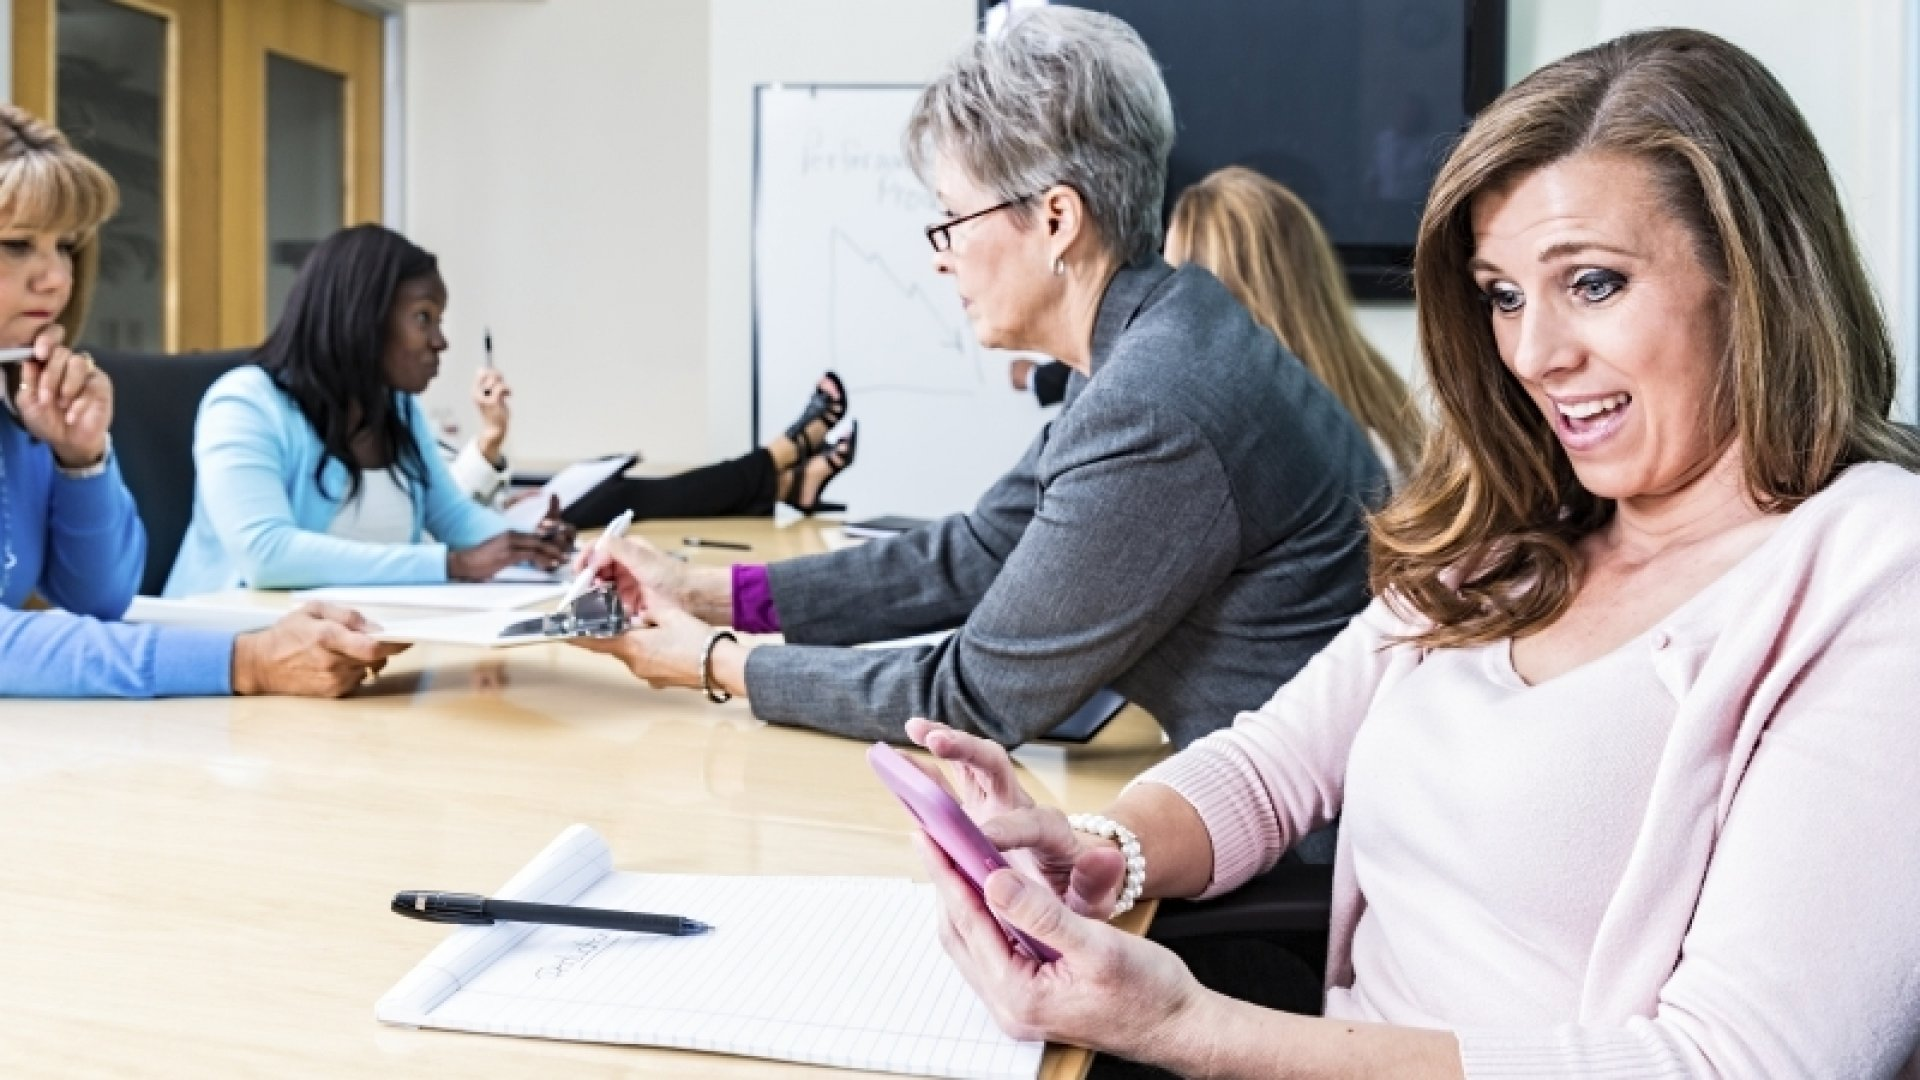 Why Successful People Never Bring Smartphones Into Meetings